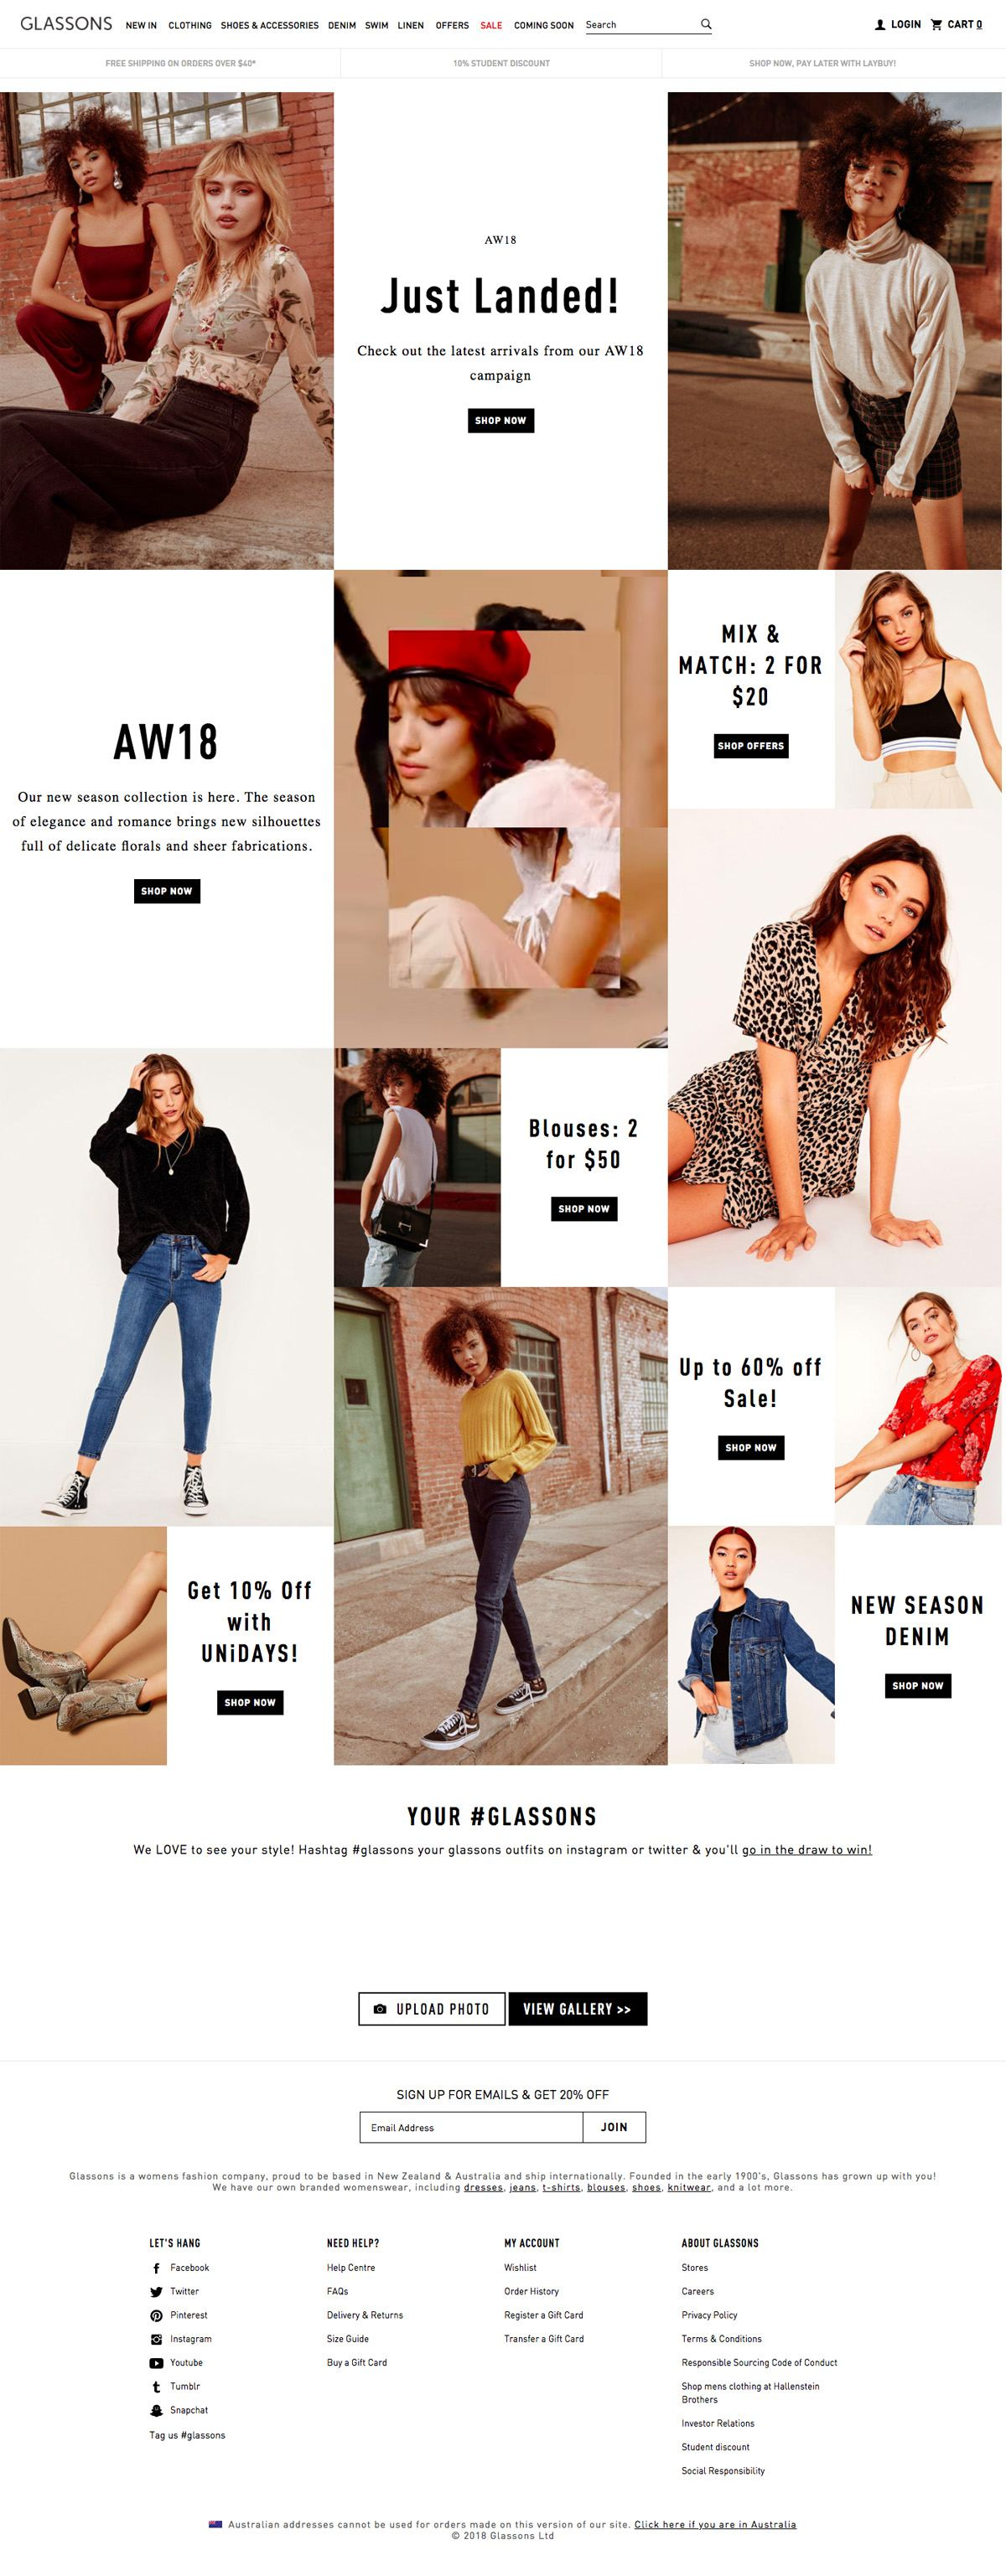 eCommerce website: Glassons